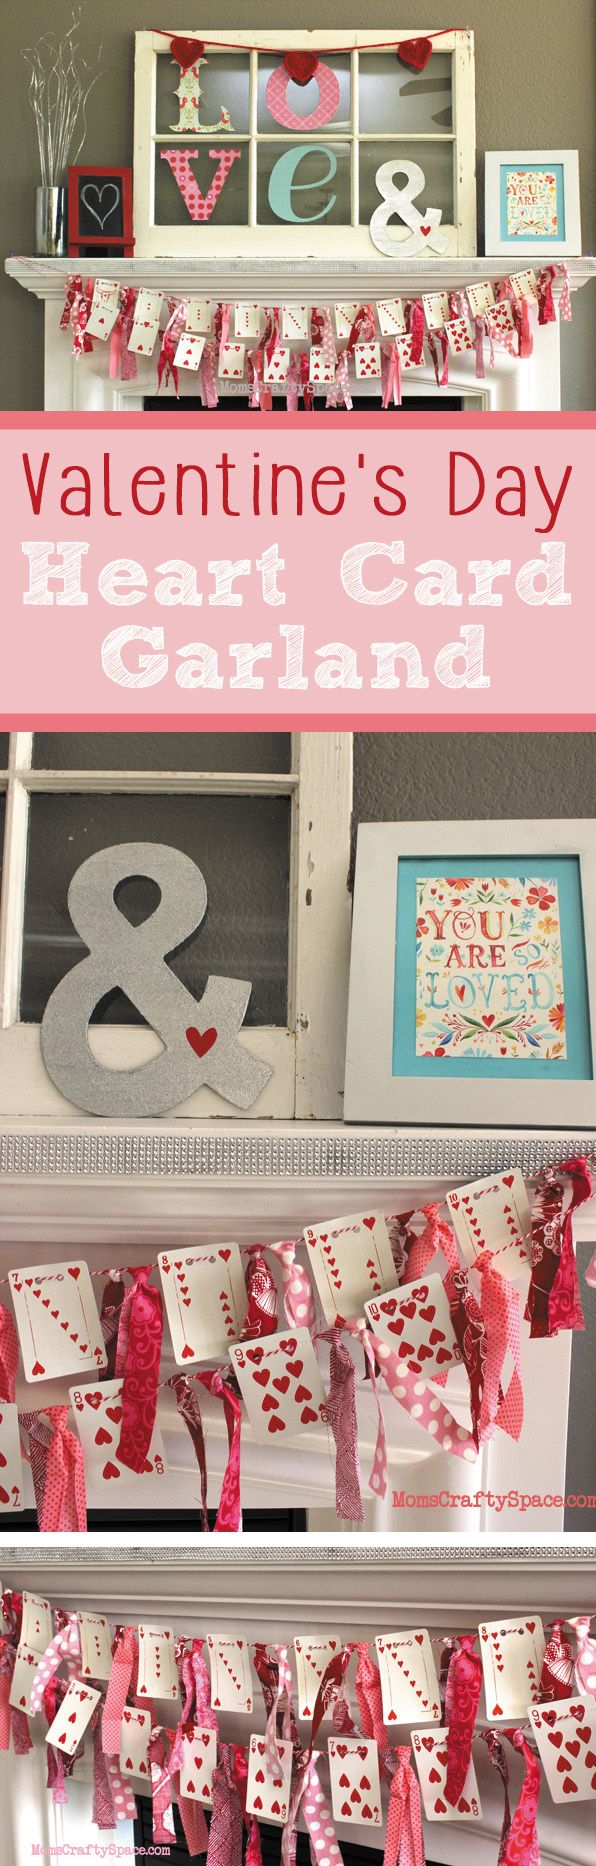 Valentines Day: Valentine's Day Heart Cards Garland - Happiness is...